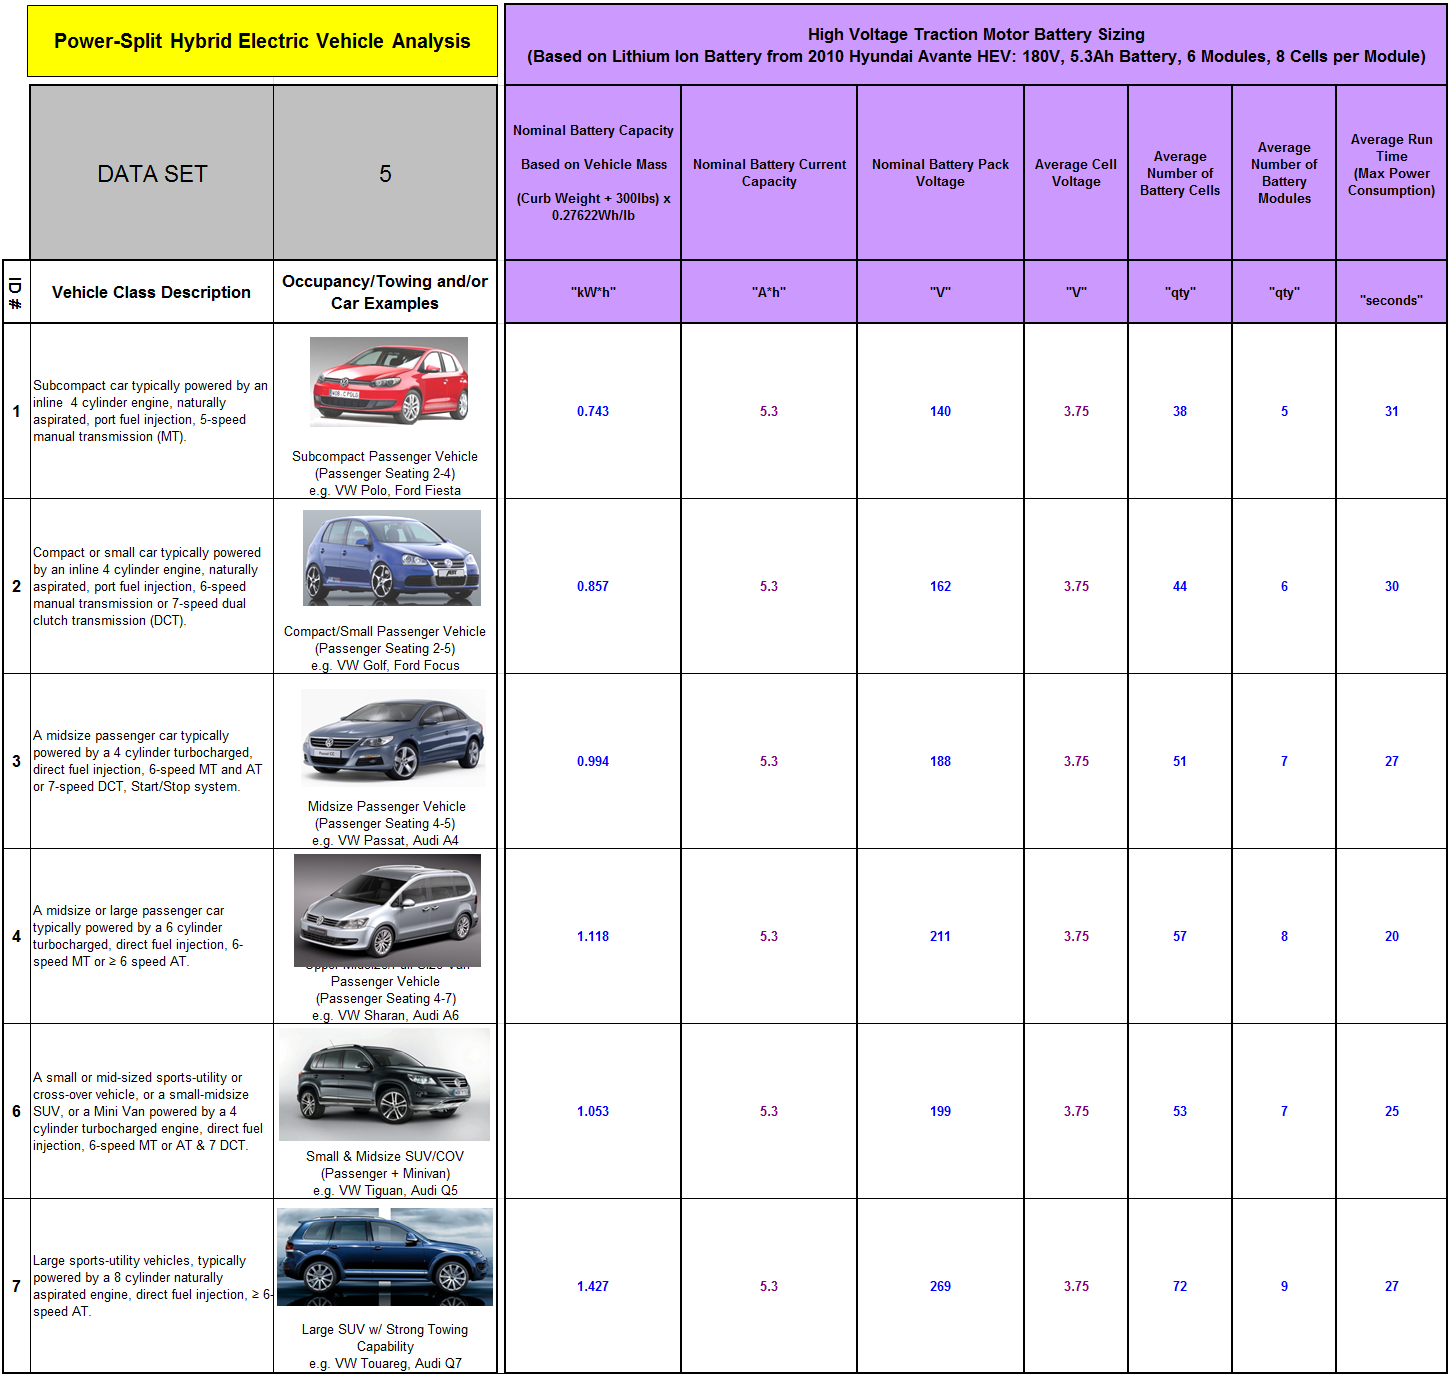 Page 124 Table G-3: Power-split Vehicle Segment Attribute